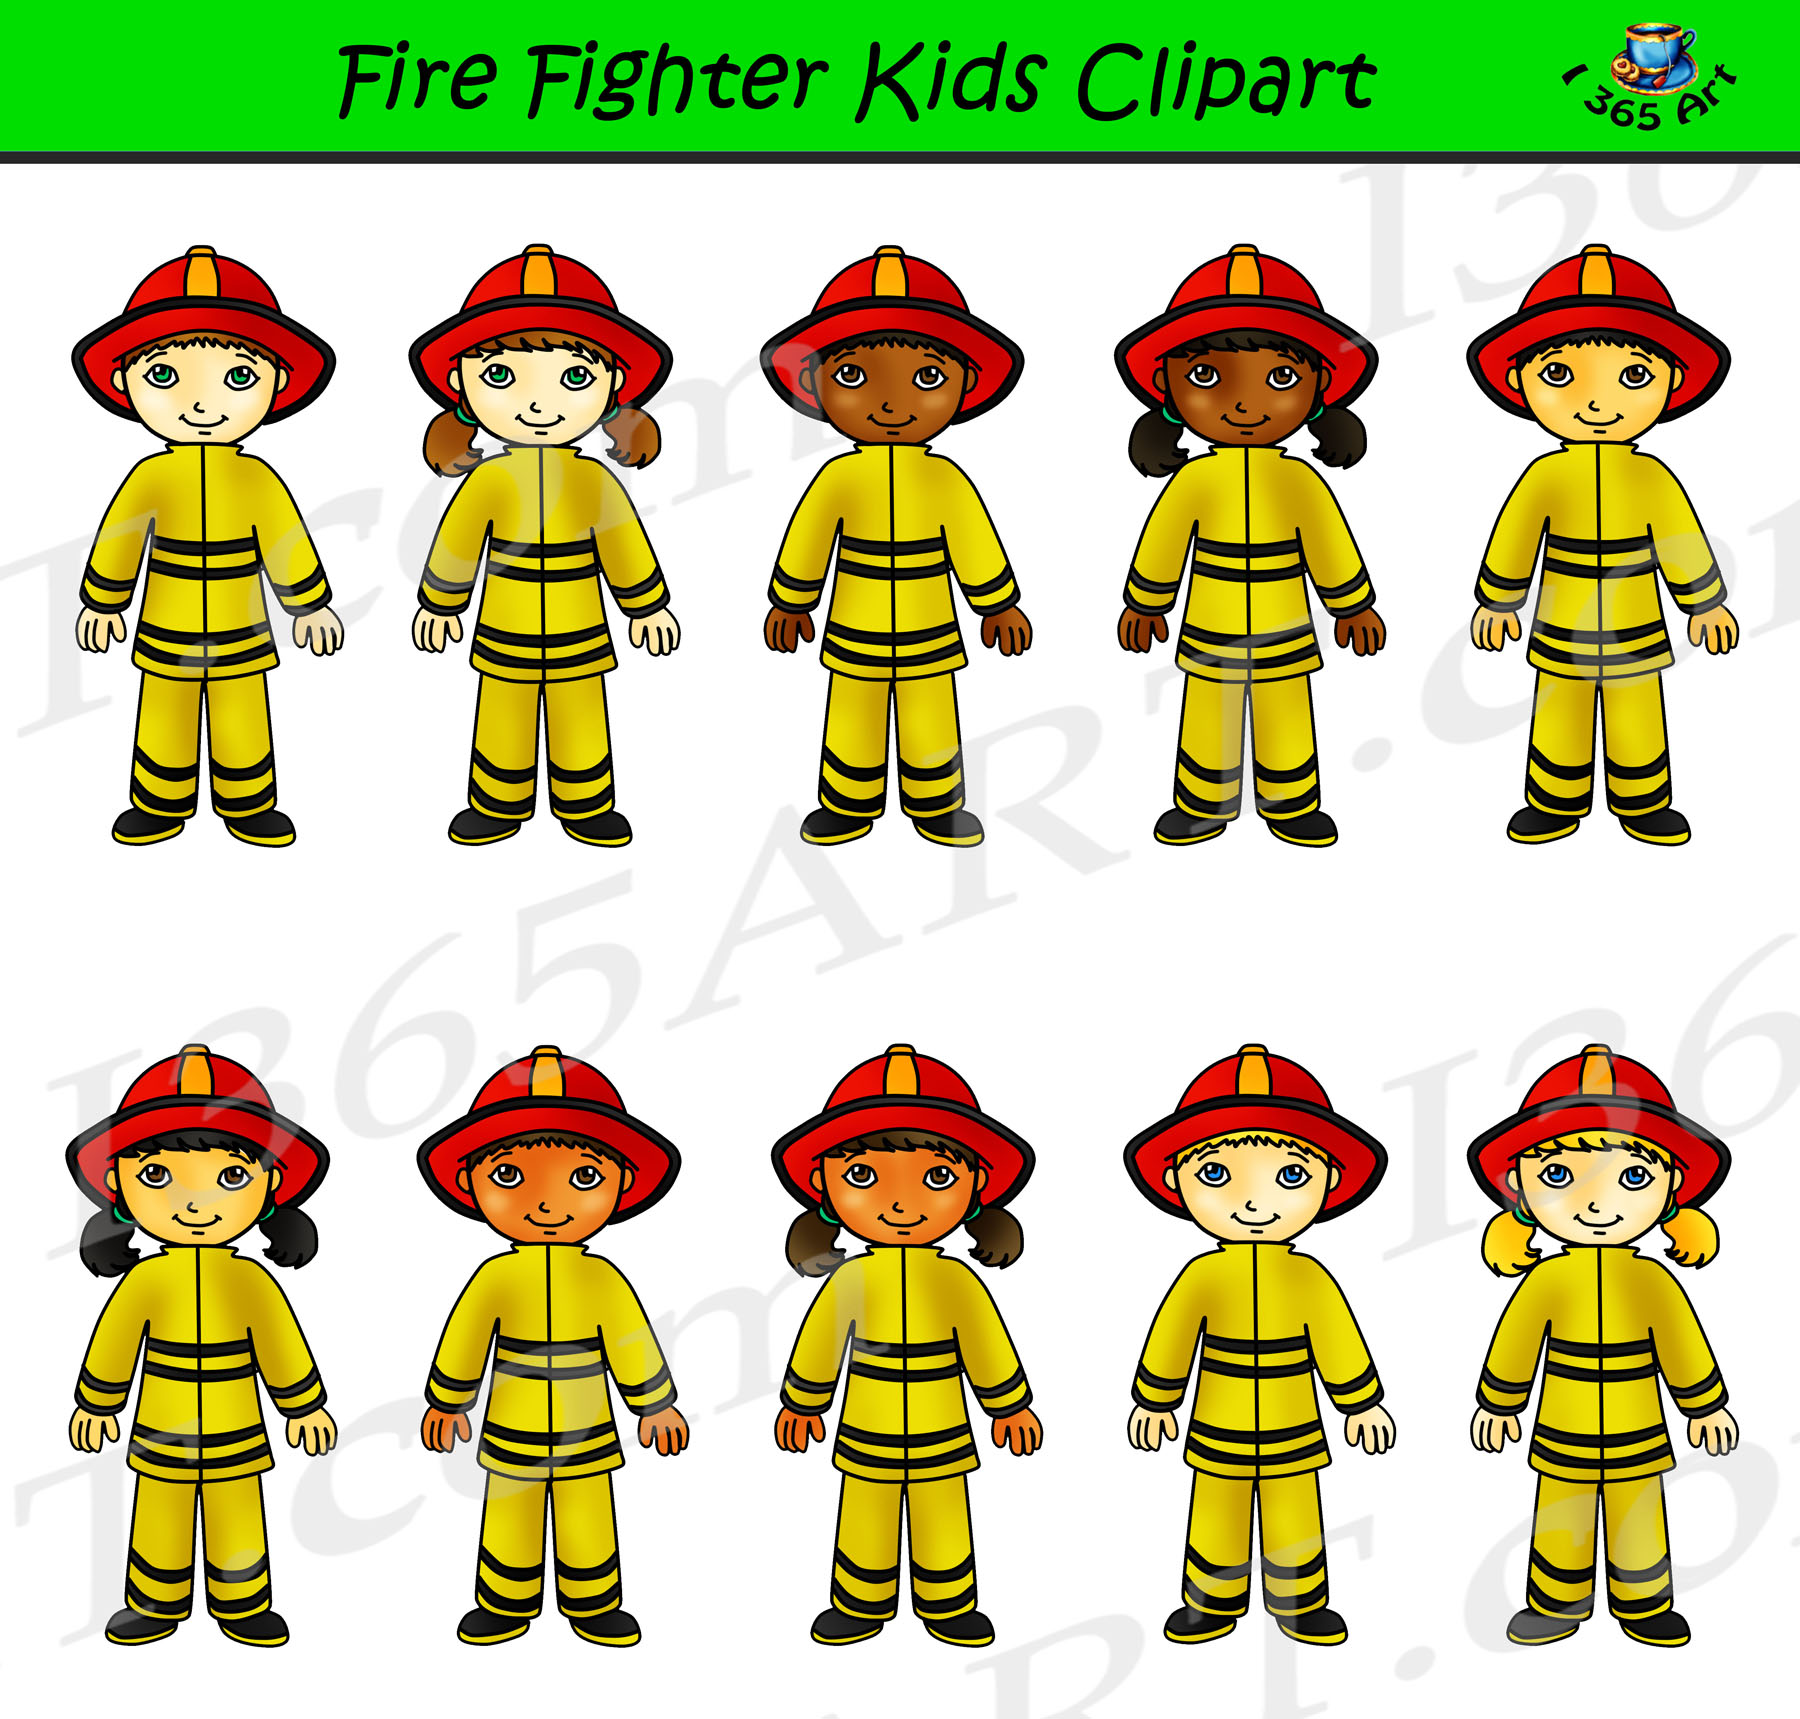 Firefighter Clipart Kids Career Day Graphics Clipart For School